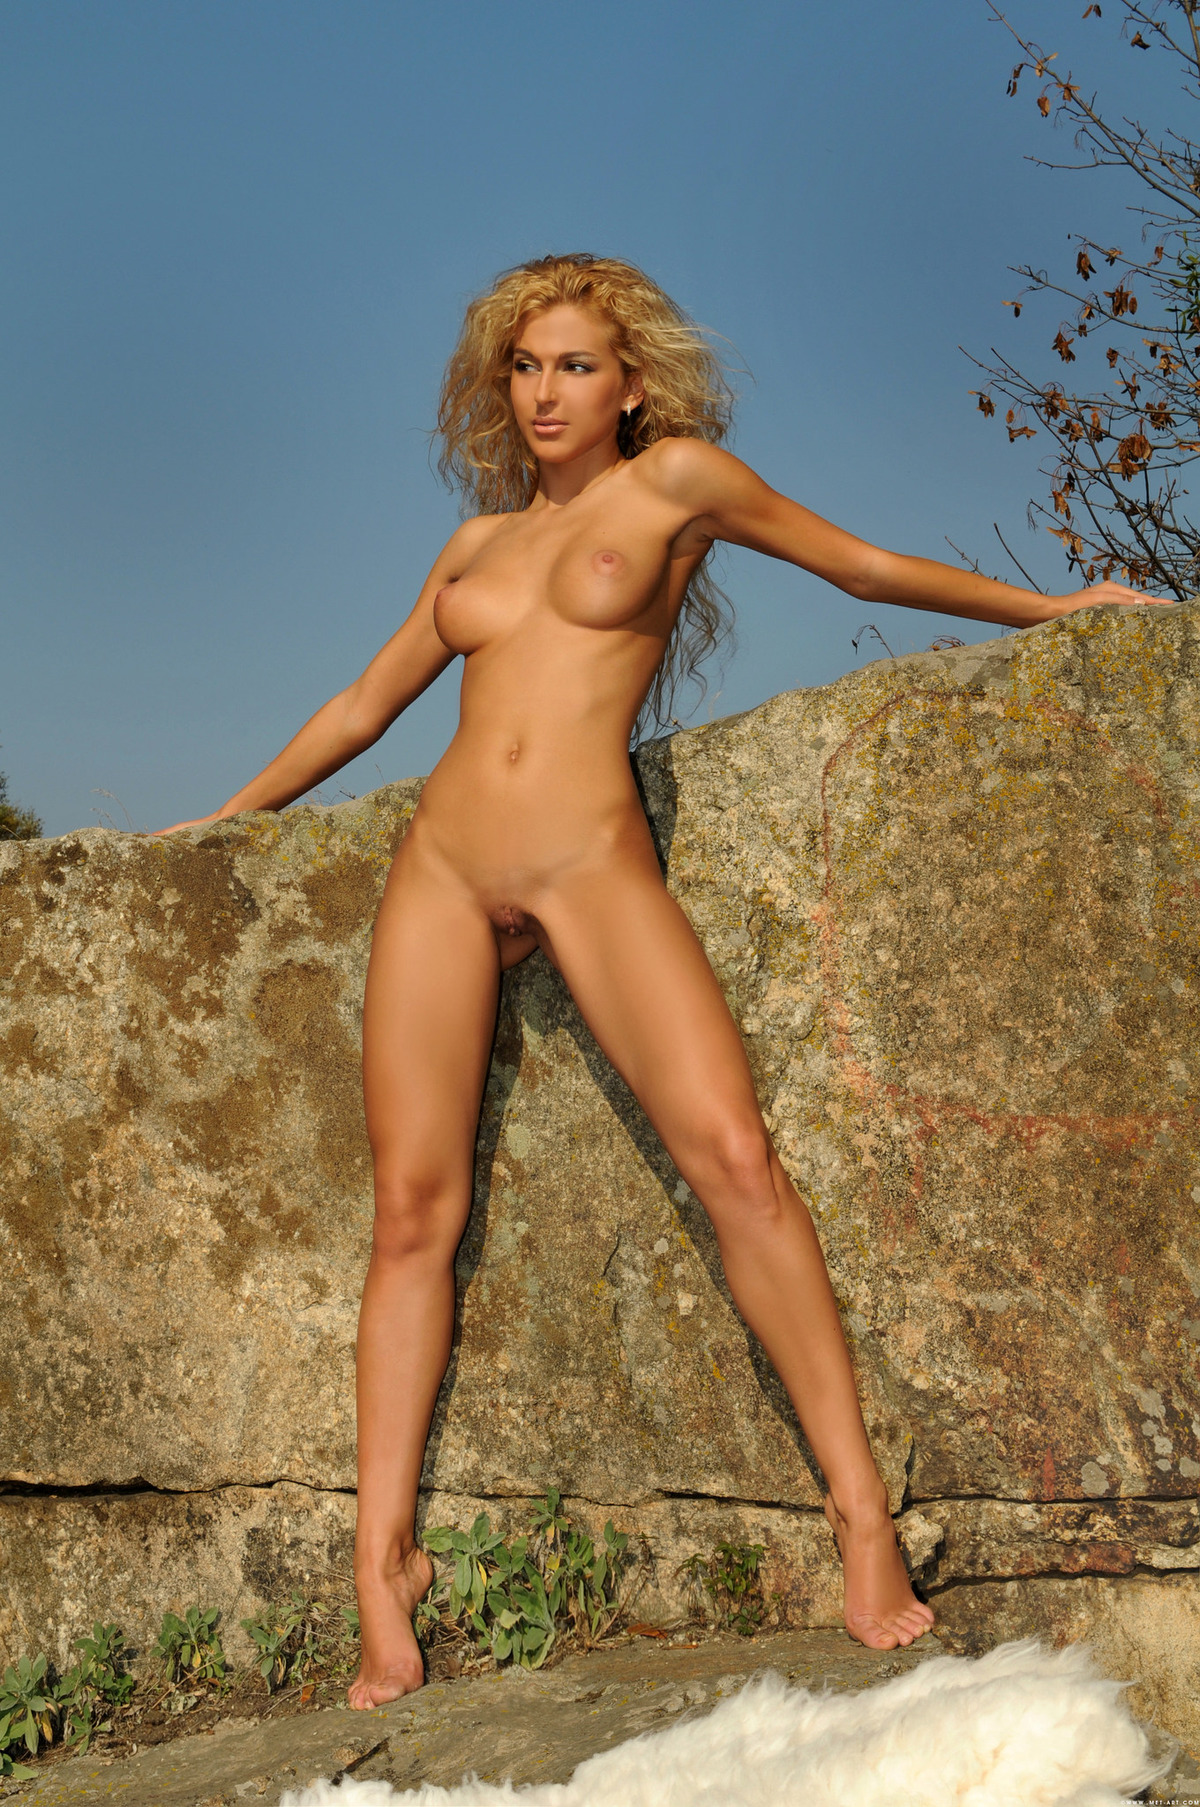 Ukrainian Blonde Beauty Katya Ad - picture 07